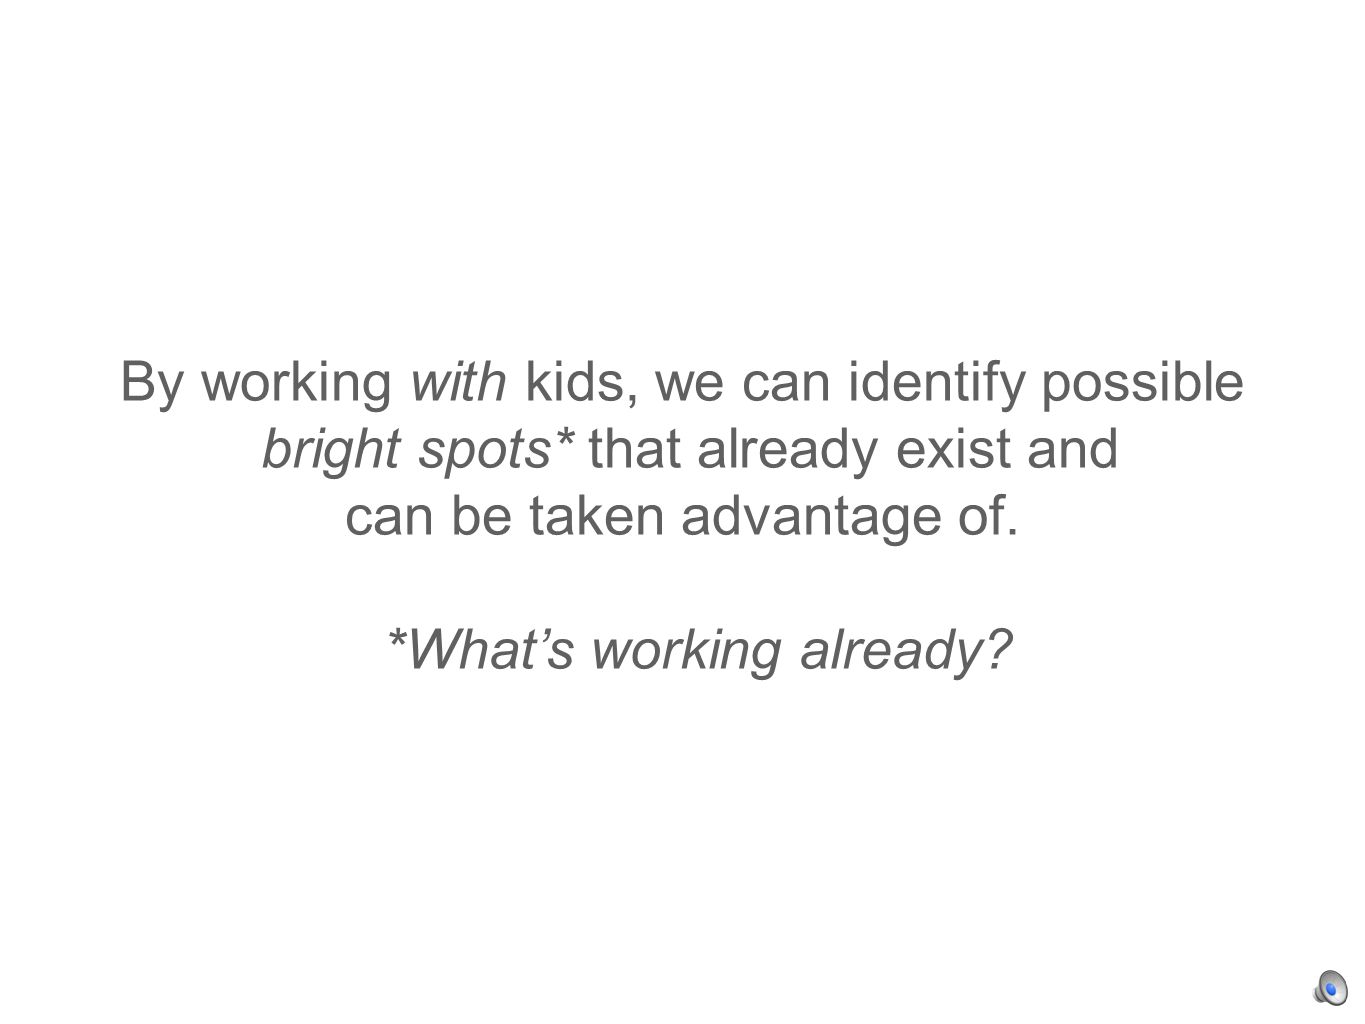 By working with kids, we can identify possible bright spots* that already exist and can be taken advantage of.